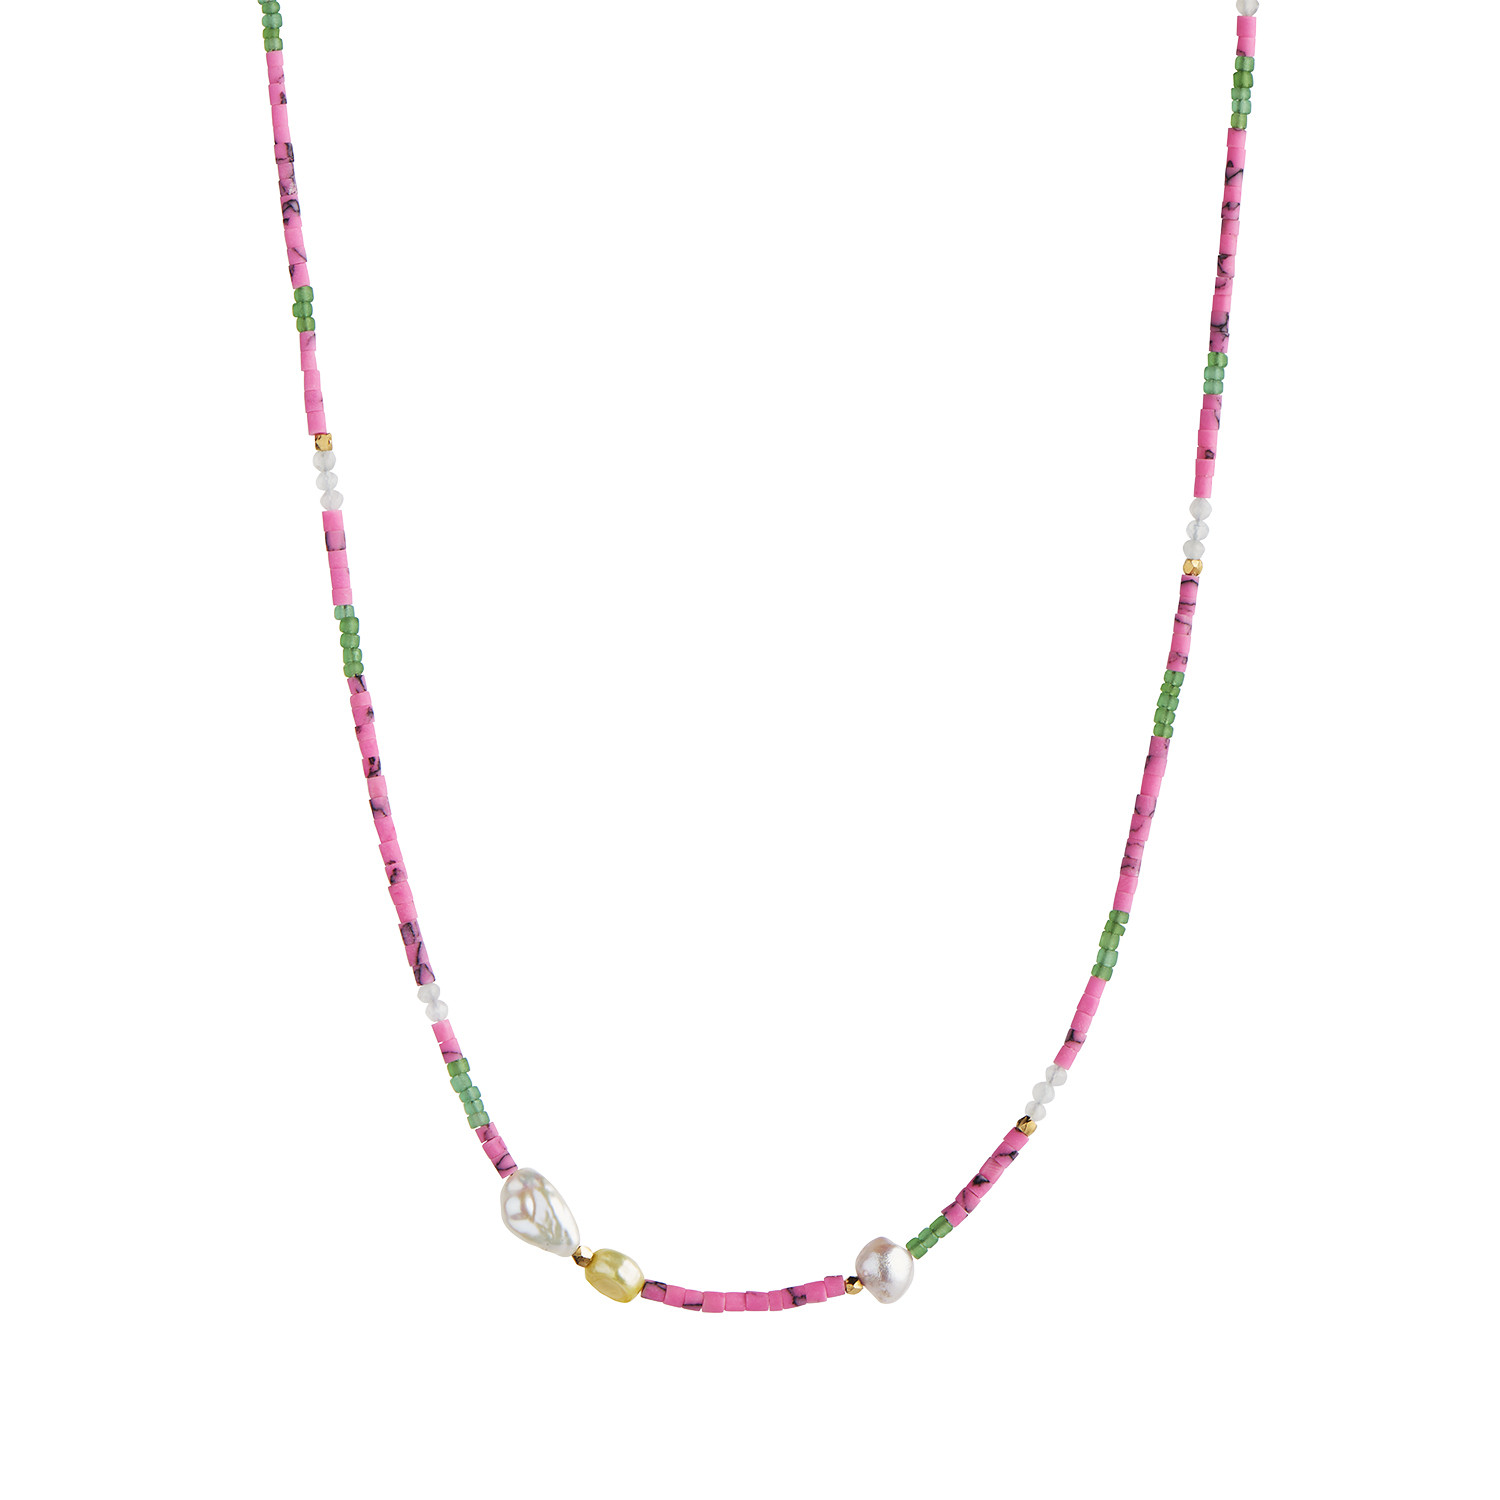 Deep Sea Necklace with Fresh Pink & Dusty Green Mix